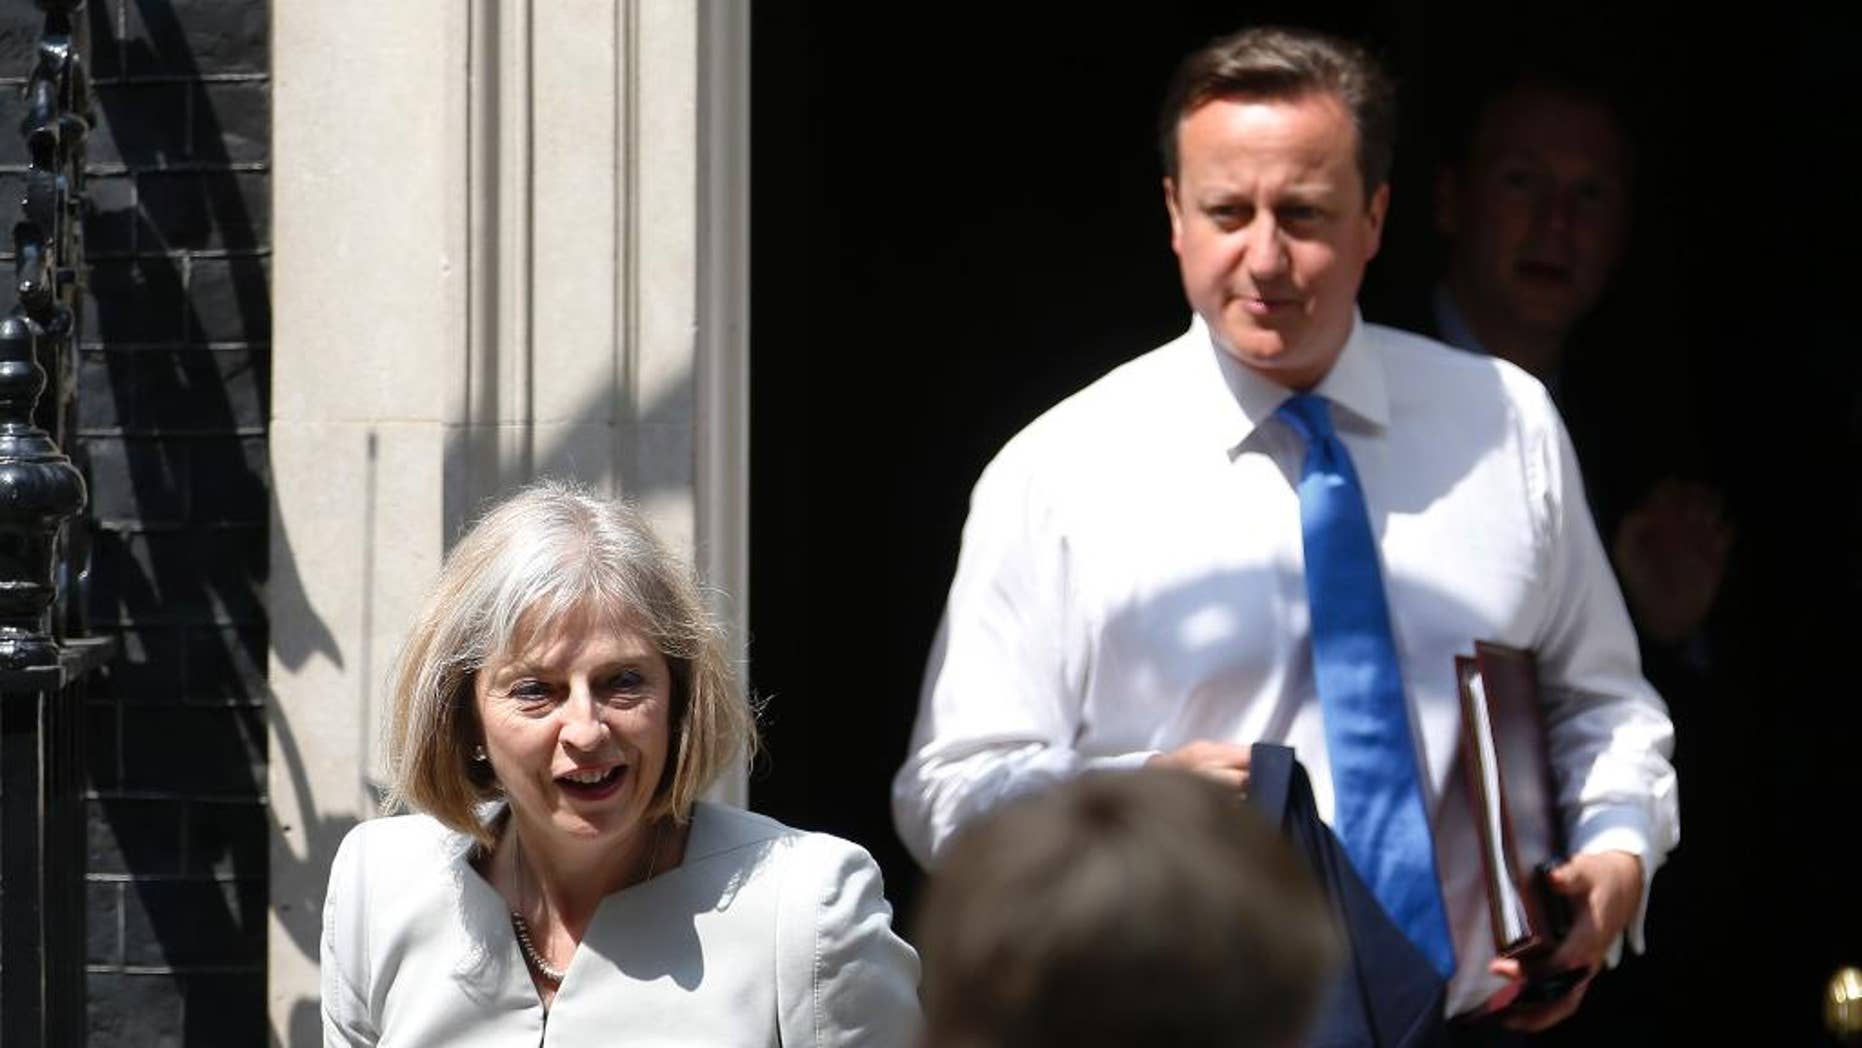 FILE - In this July 17, 2013 file photo, British Home Secretary Theresa May, left, and British Prime Minister David Cameron leave 10 Downing Street in London. A former senior British government official says May undermined Cameron in the run-up to Britain's June 23 referendum to leave the European Union. The accusation is levied in a serialization, published  Sunday, Sept. 25, 2016, of a book by Cameron's communications director, Craig Oliver. (AP Photo/Sang Tan, File)